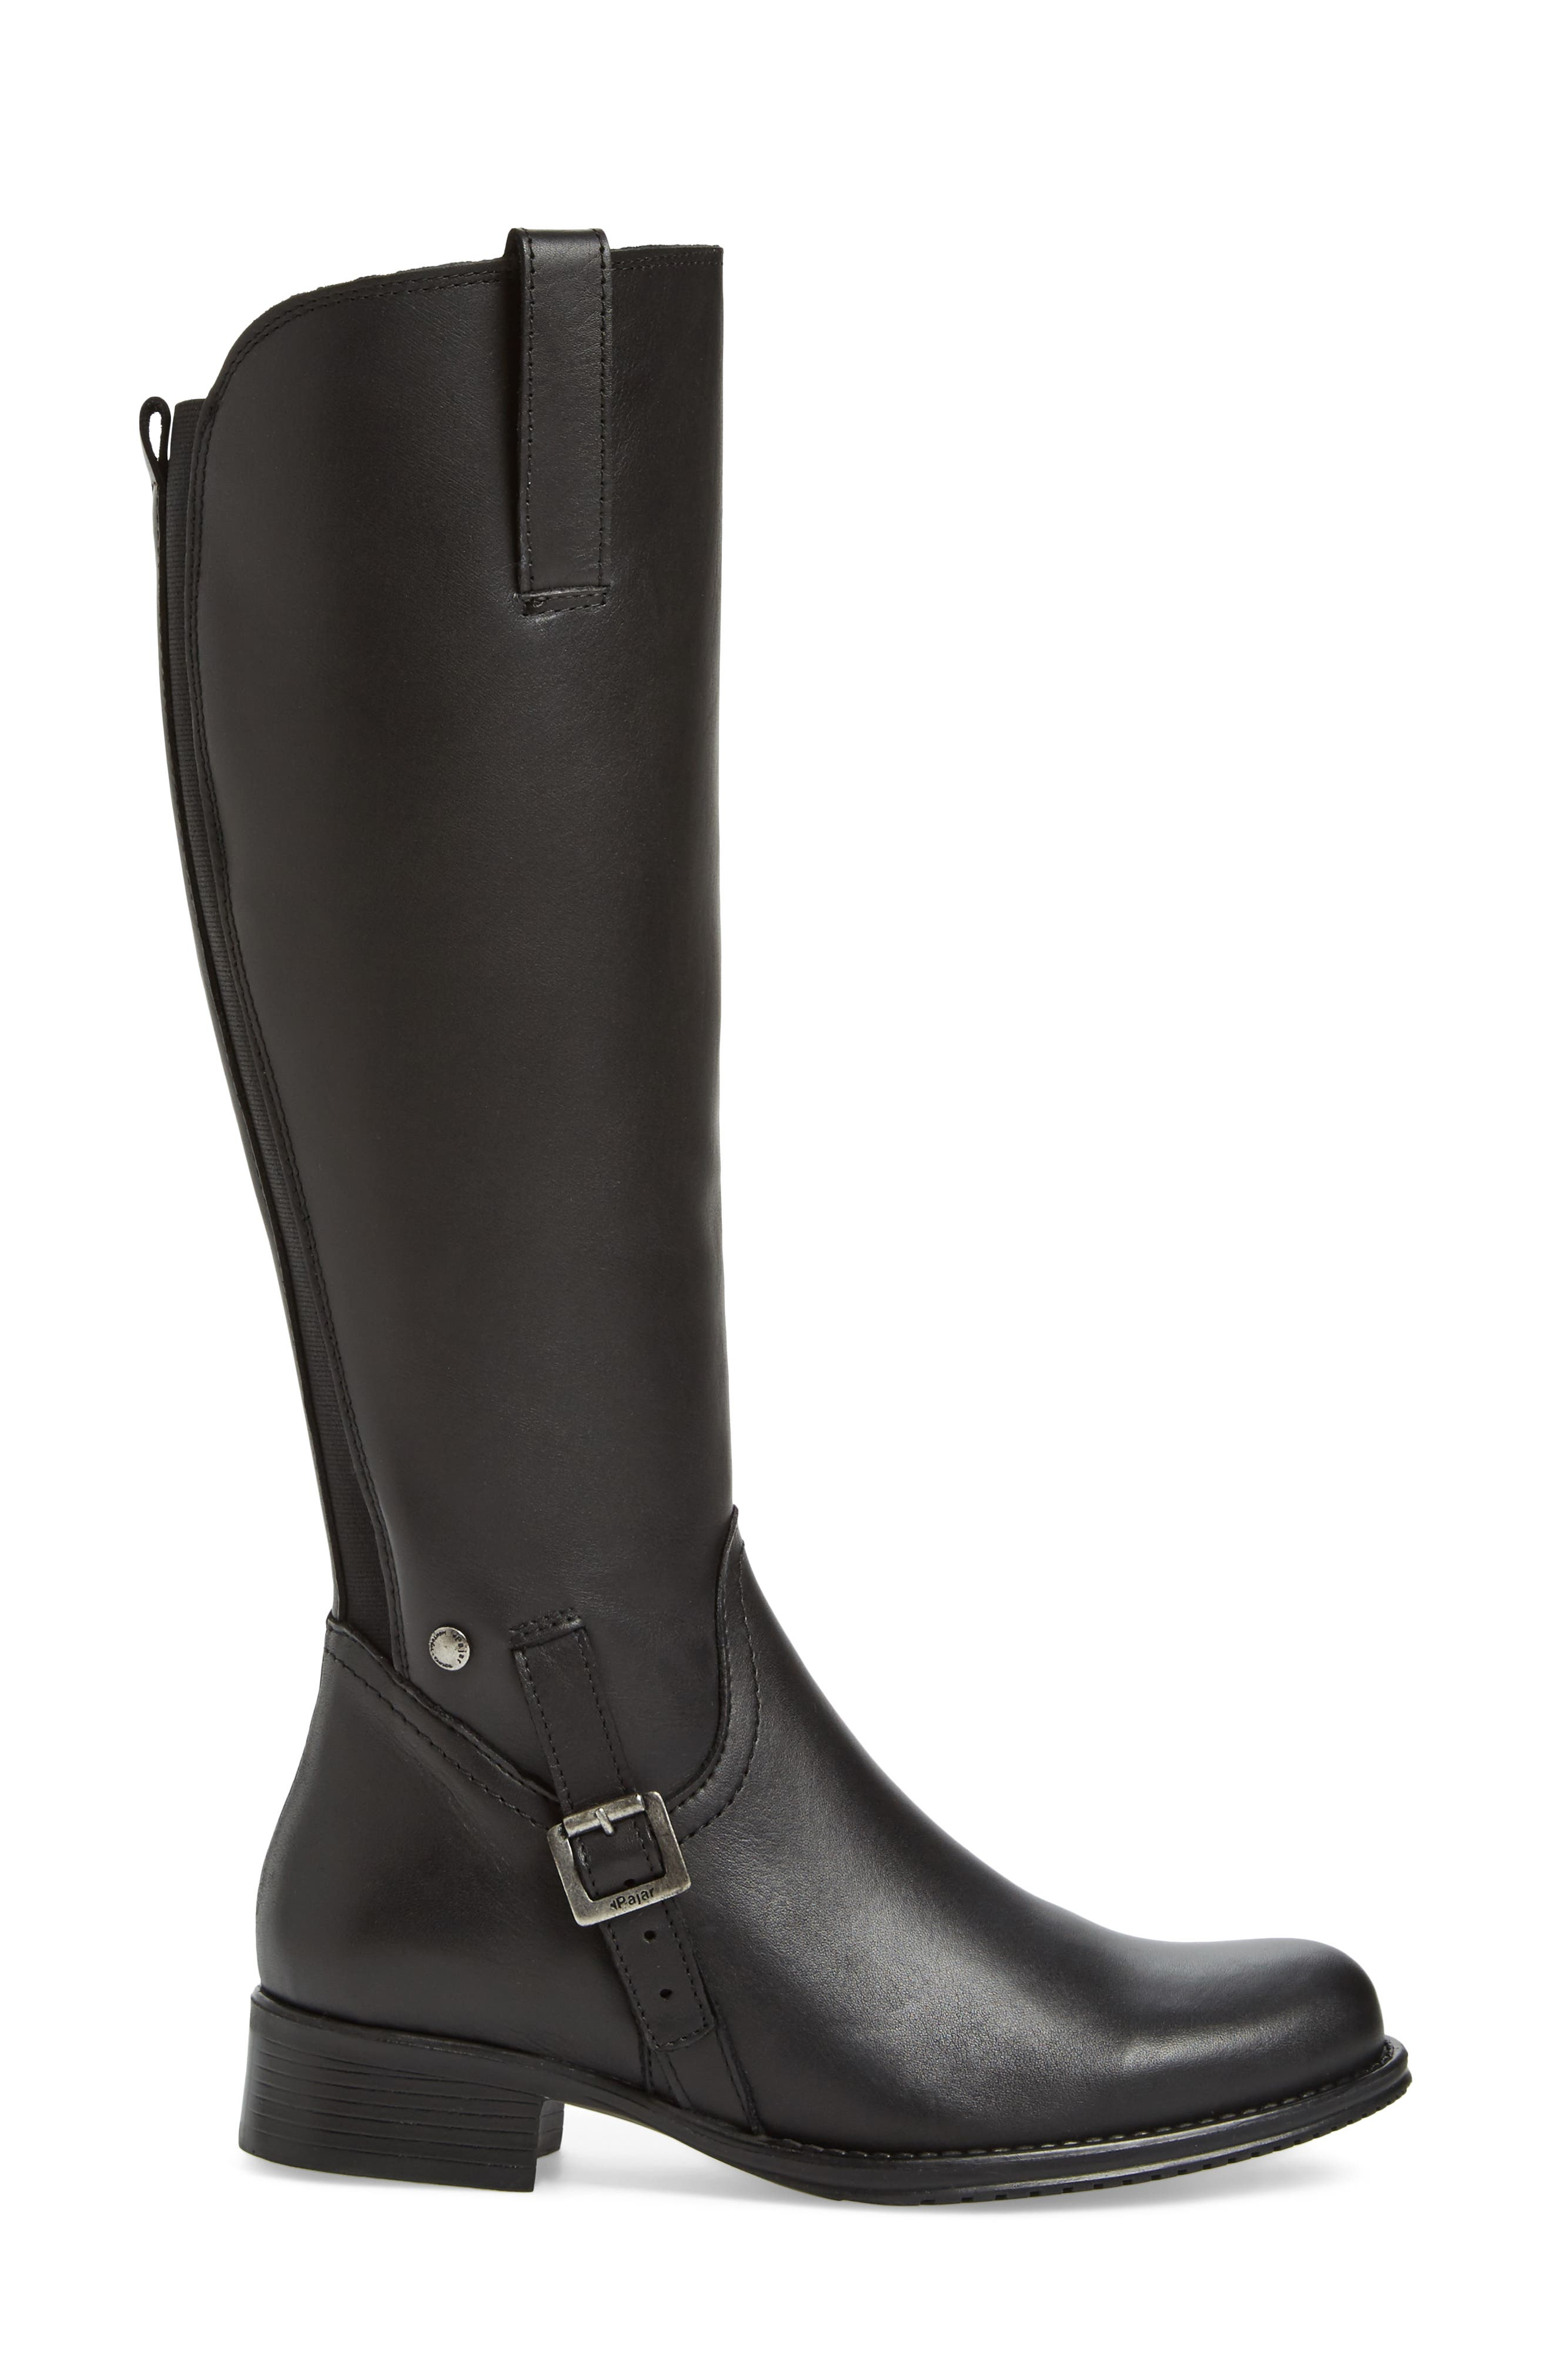 Dogueno Waterproof Boot,                             Alternate thumbnail 3, color,